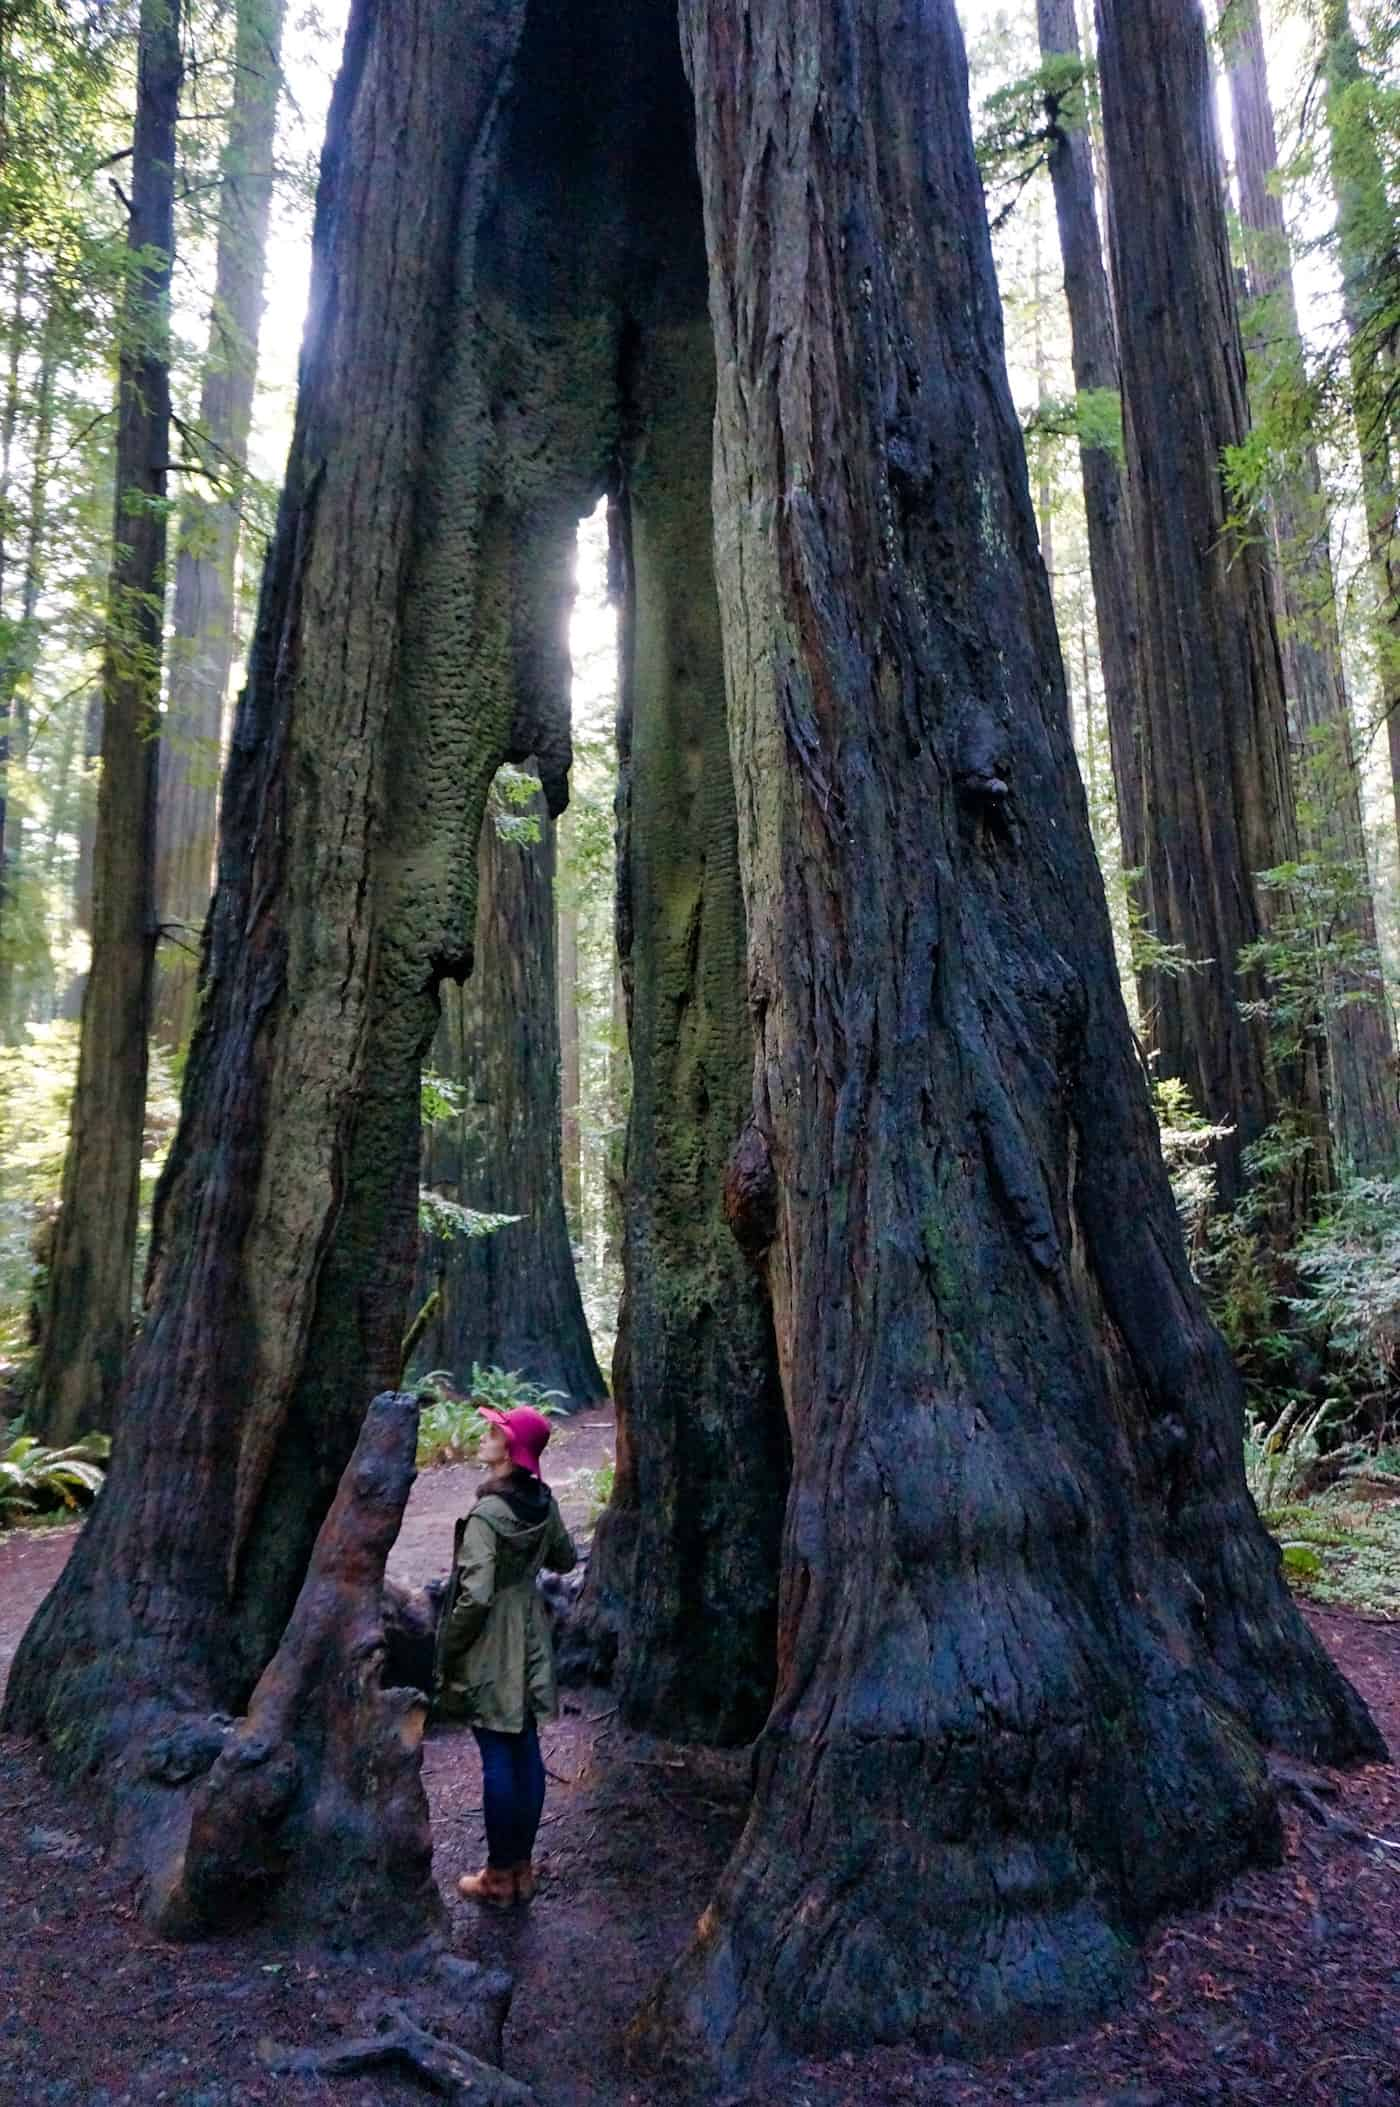 California Redwoods - Valerie Standing in Tree Heart